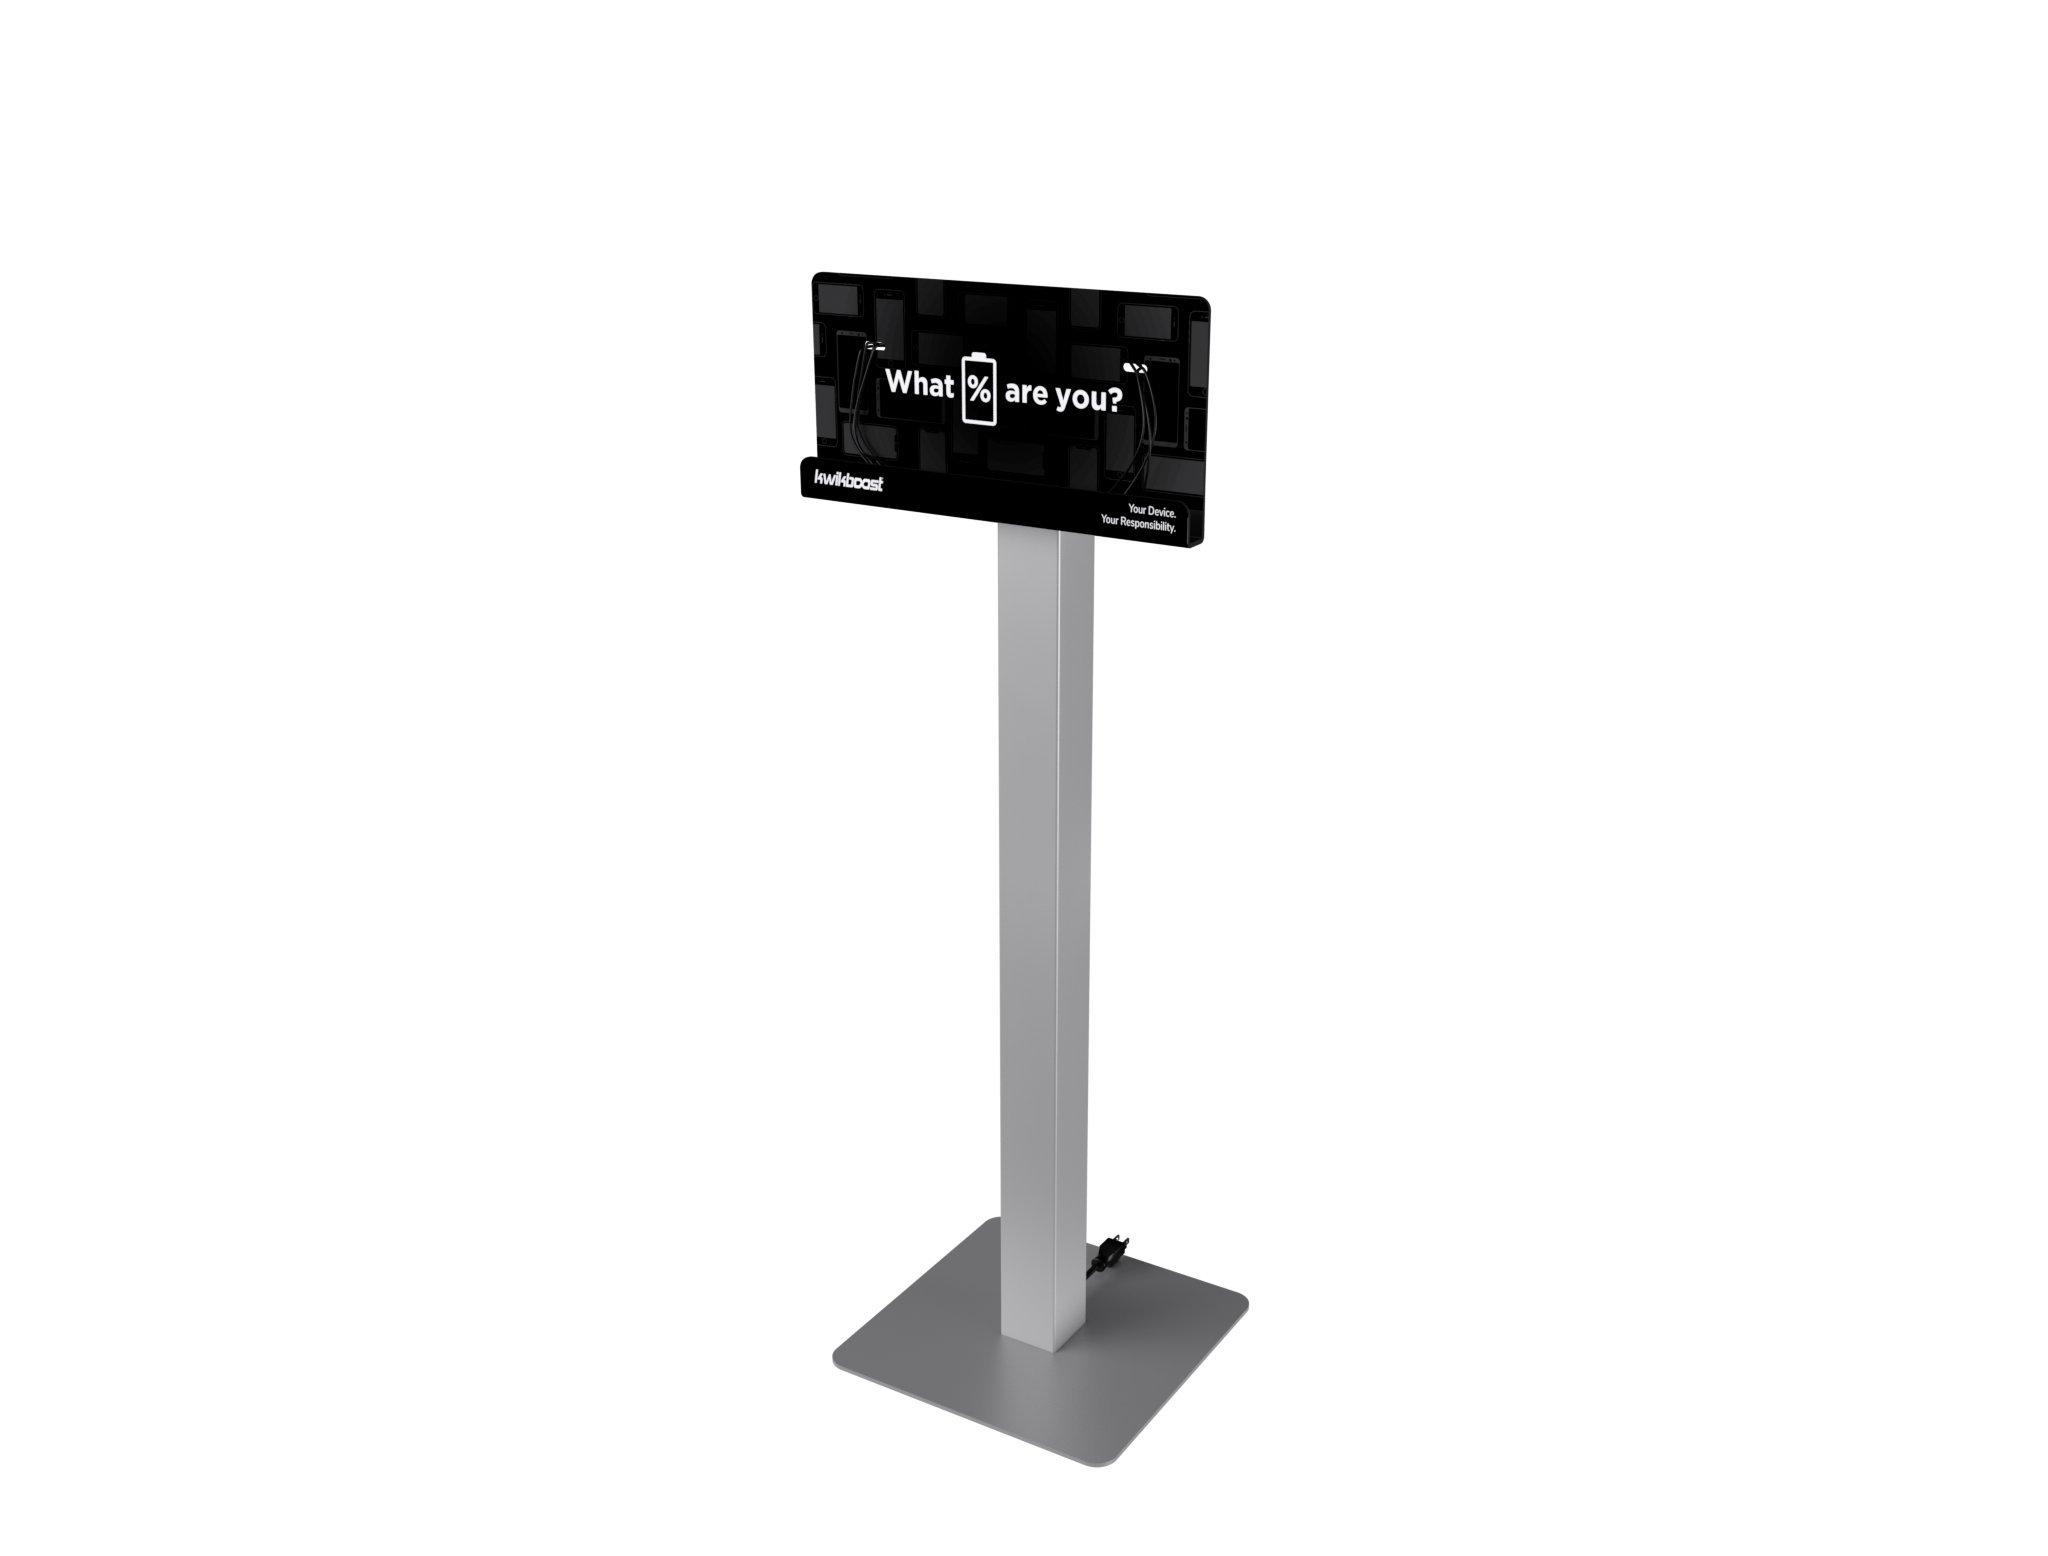 Floor Stand Cell Phone Charging Station Kiosk Tower Dock by KwikBoost | Multiple Device High Speed Cables For 8 Devices, Universal Compatibility, Charge Wireless Phones, Tablets, E-readers, M8 Basic